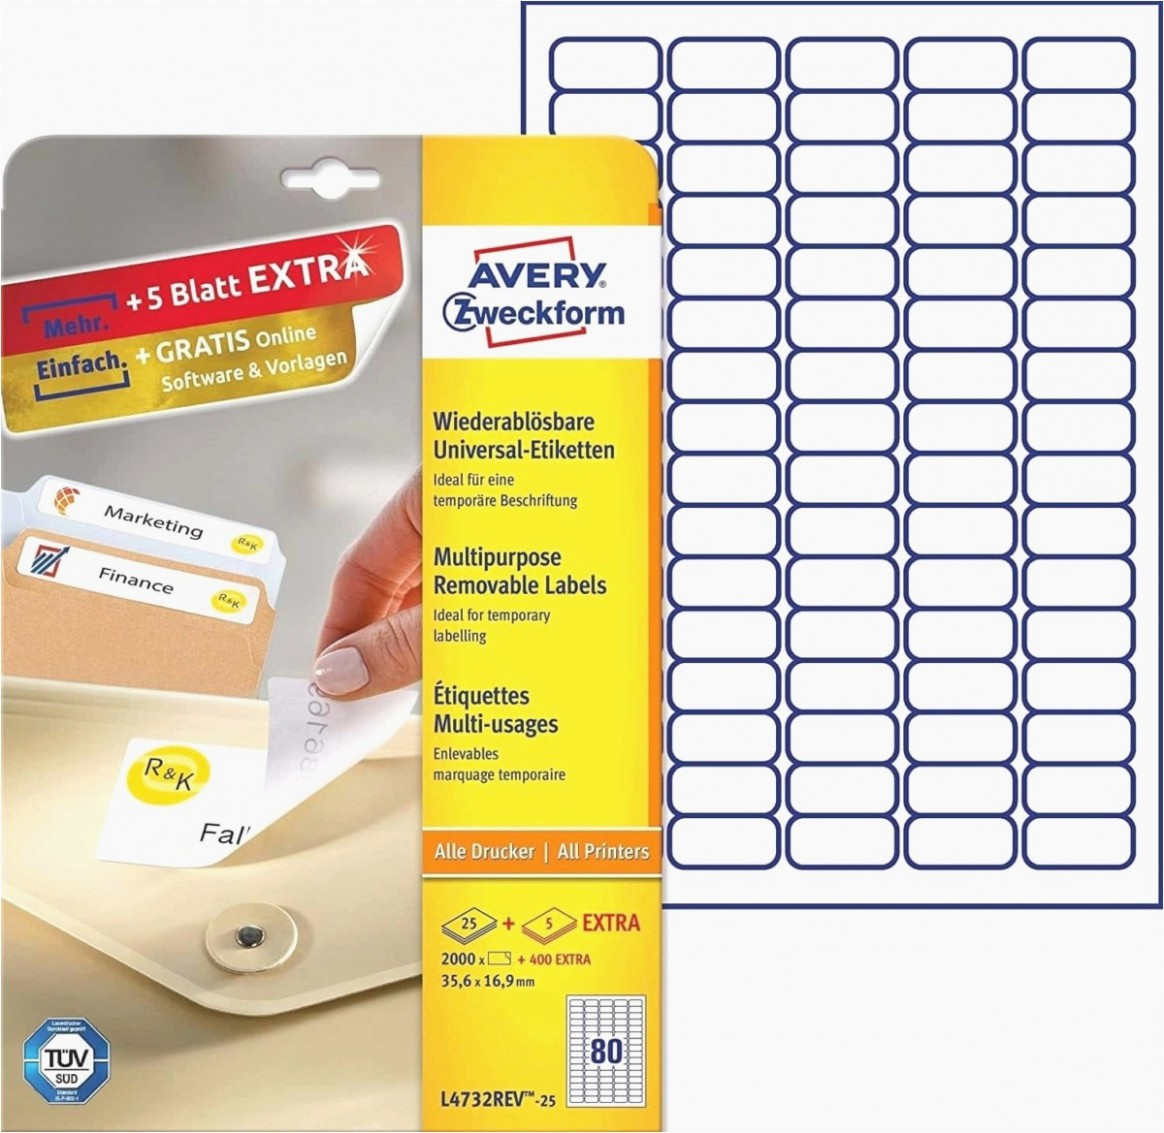 Avery 30 Up Labels Template Fresh 15 Brilliant Ways to Advertise